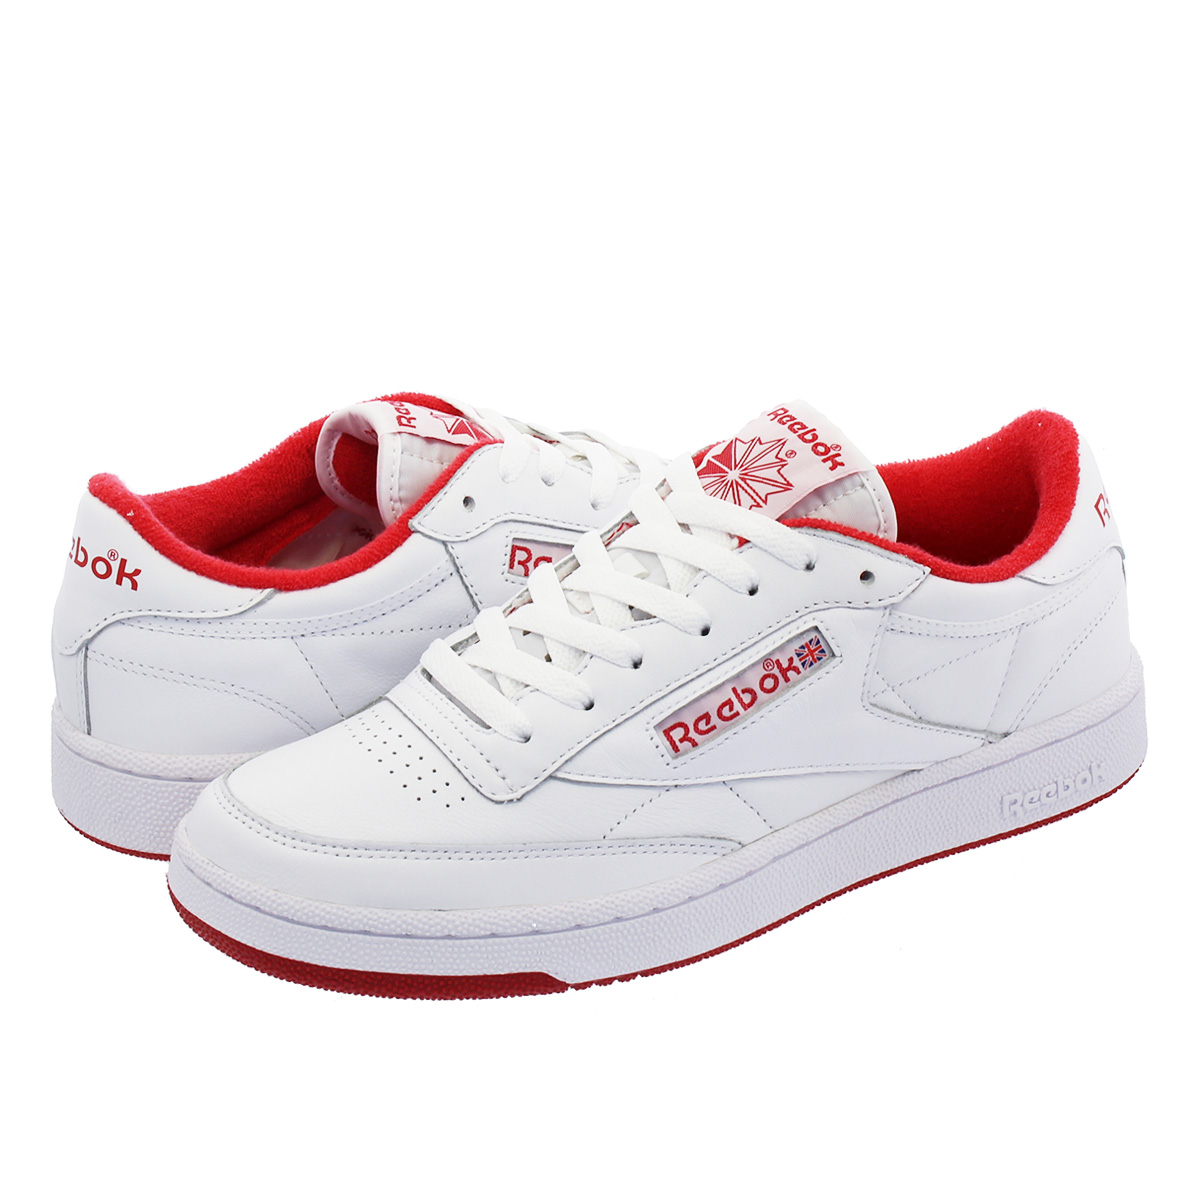 ad87a31e4c8 Reebok CLUB C 85 ARCHIVE Reebok club C 85 ARCHIVE WHITE EXCELLENT RED cn3711